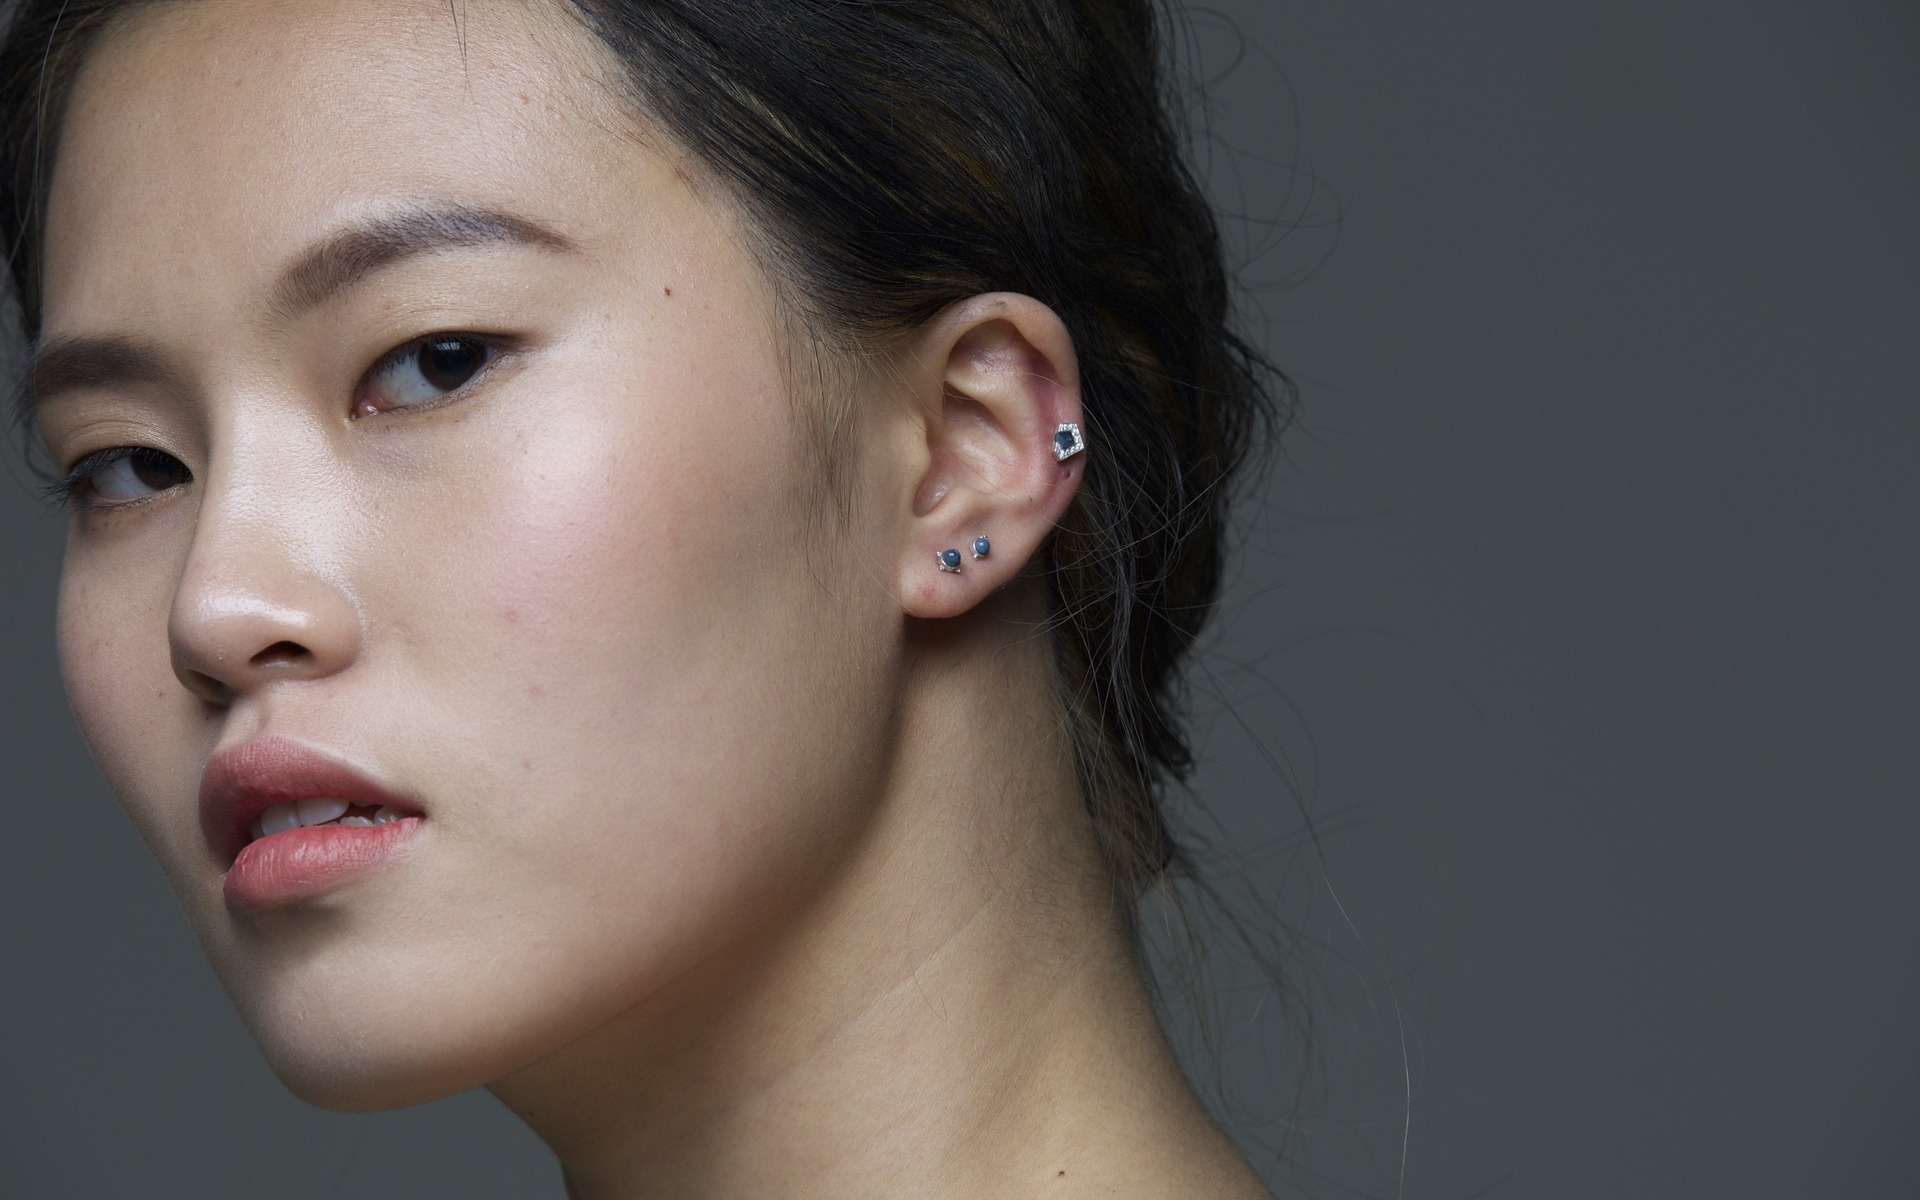 asian woman face with earrings | the lonely tribalist